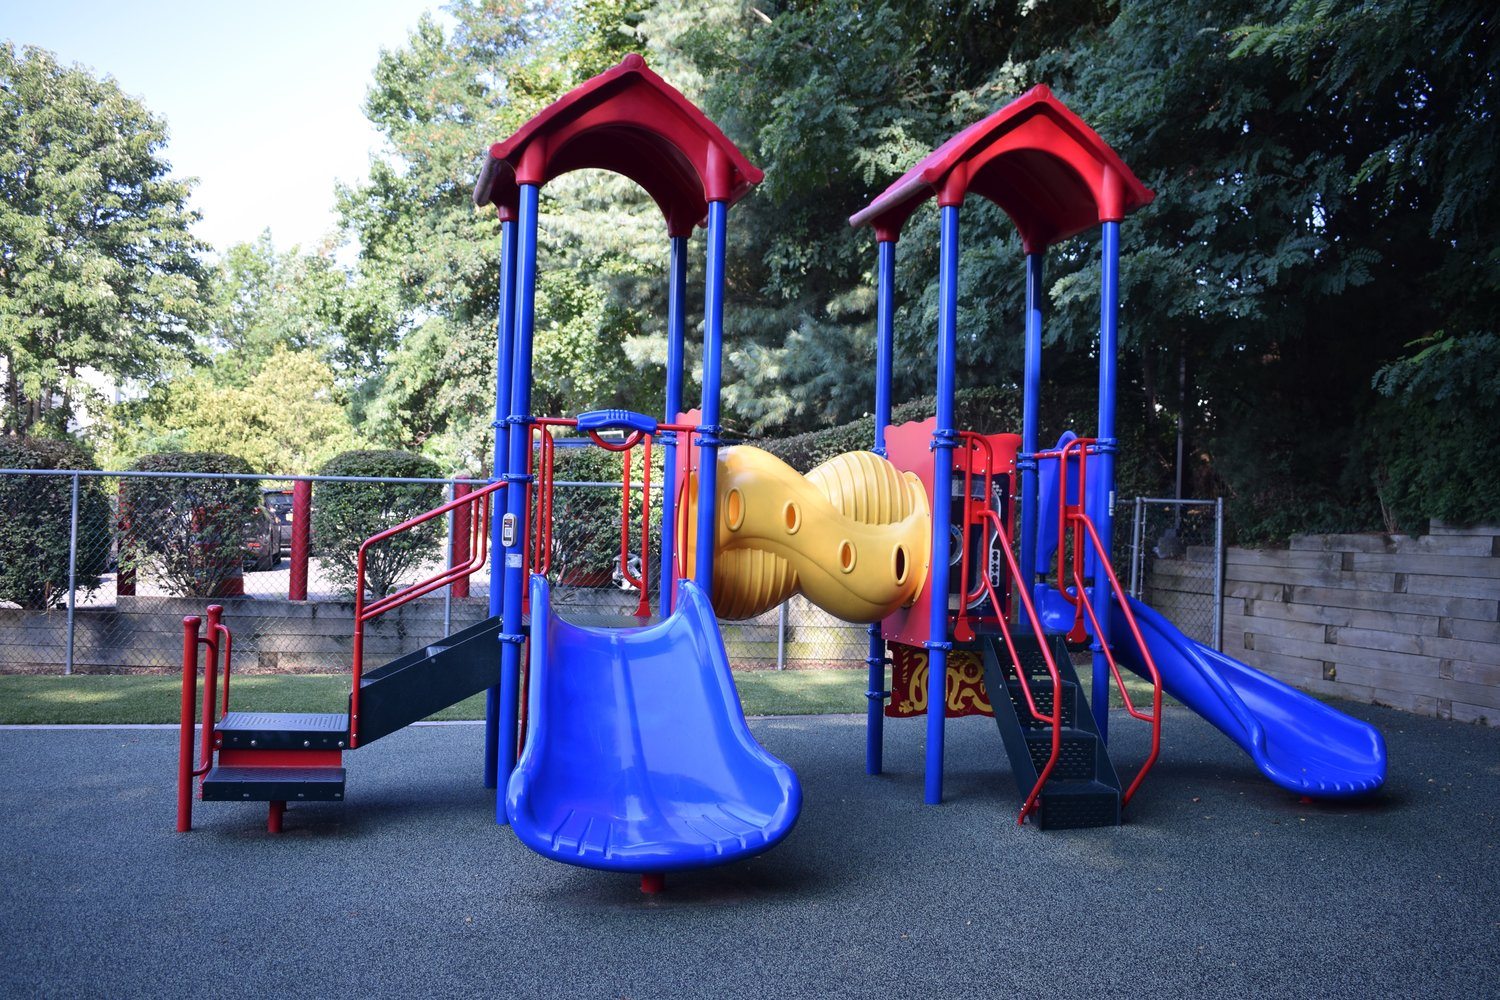 The playground includes a jungle gym near the back corner of the play area.